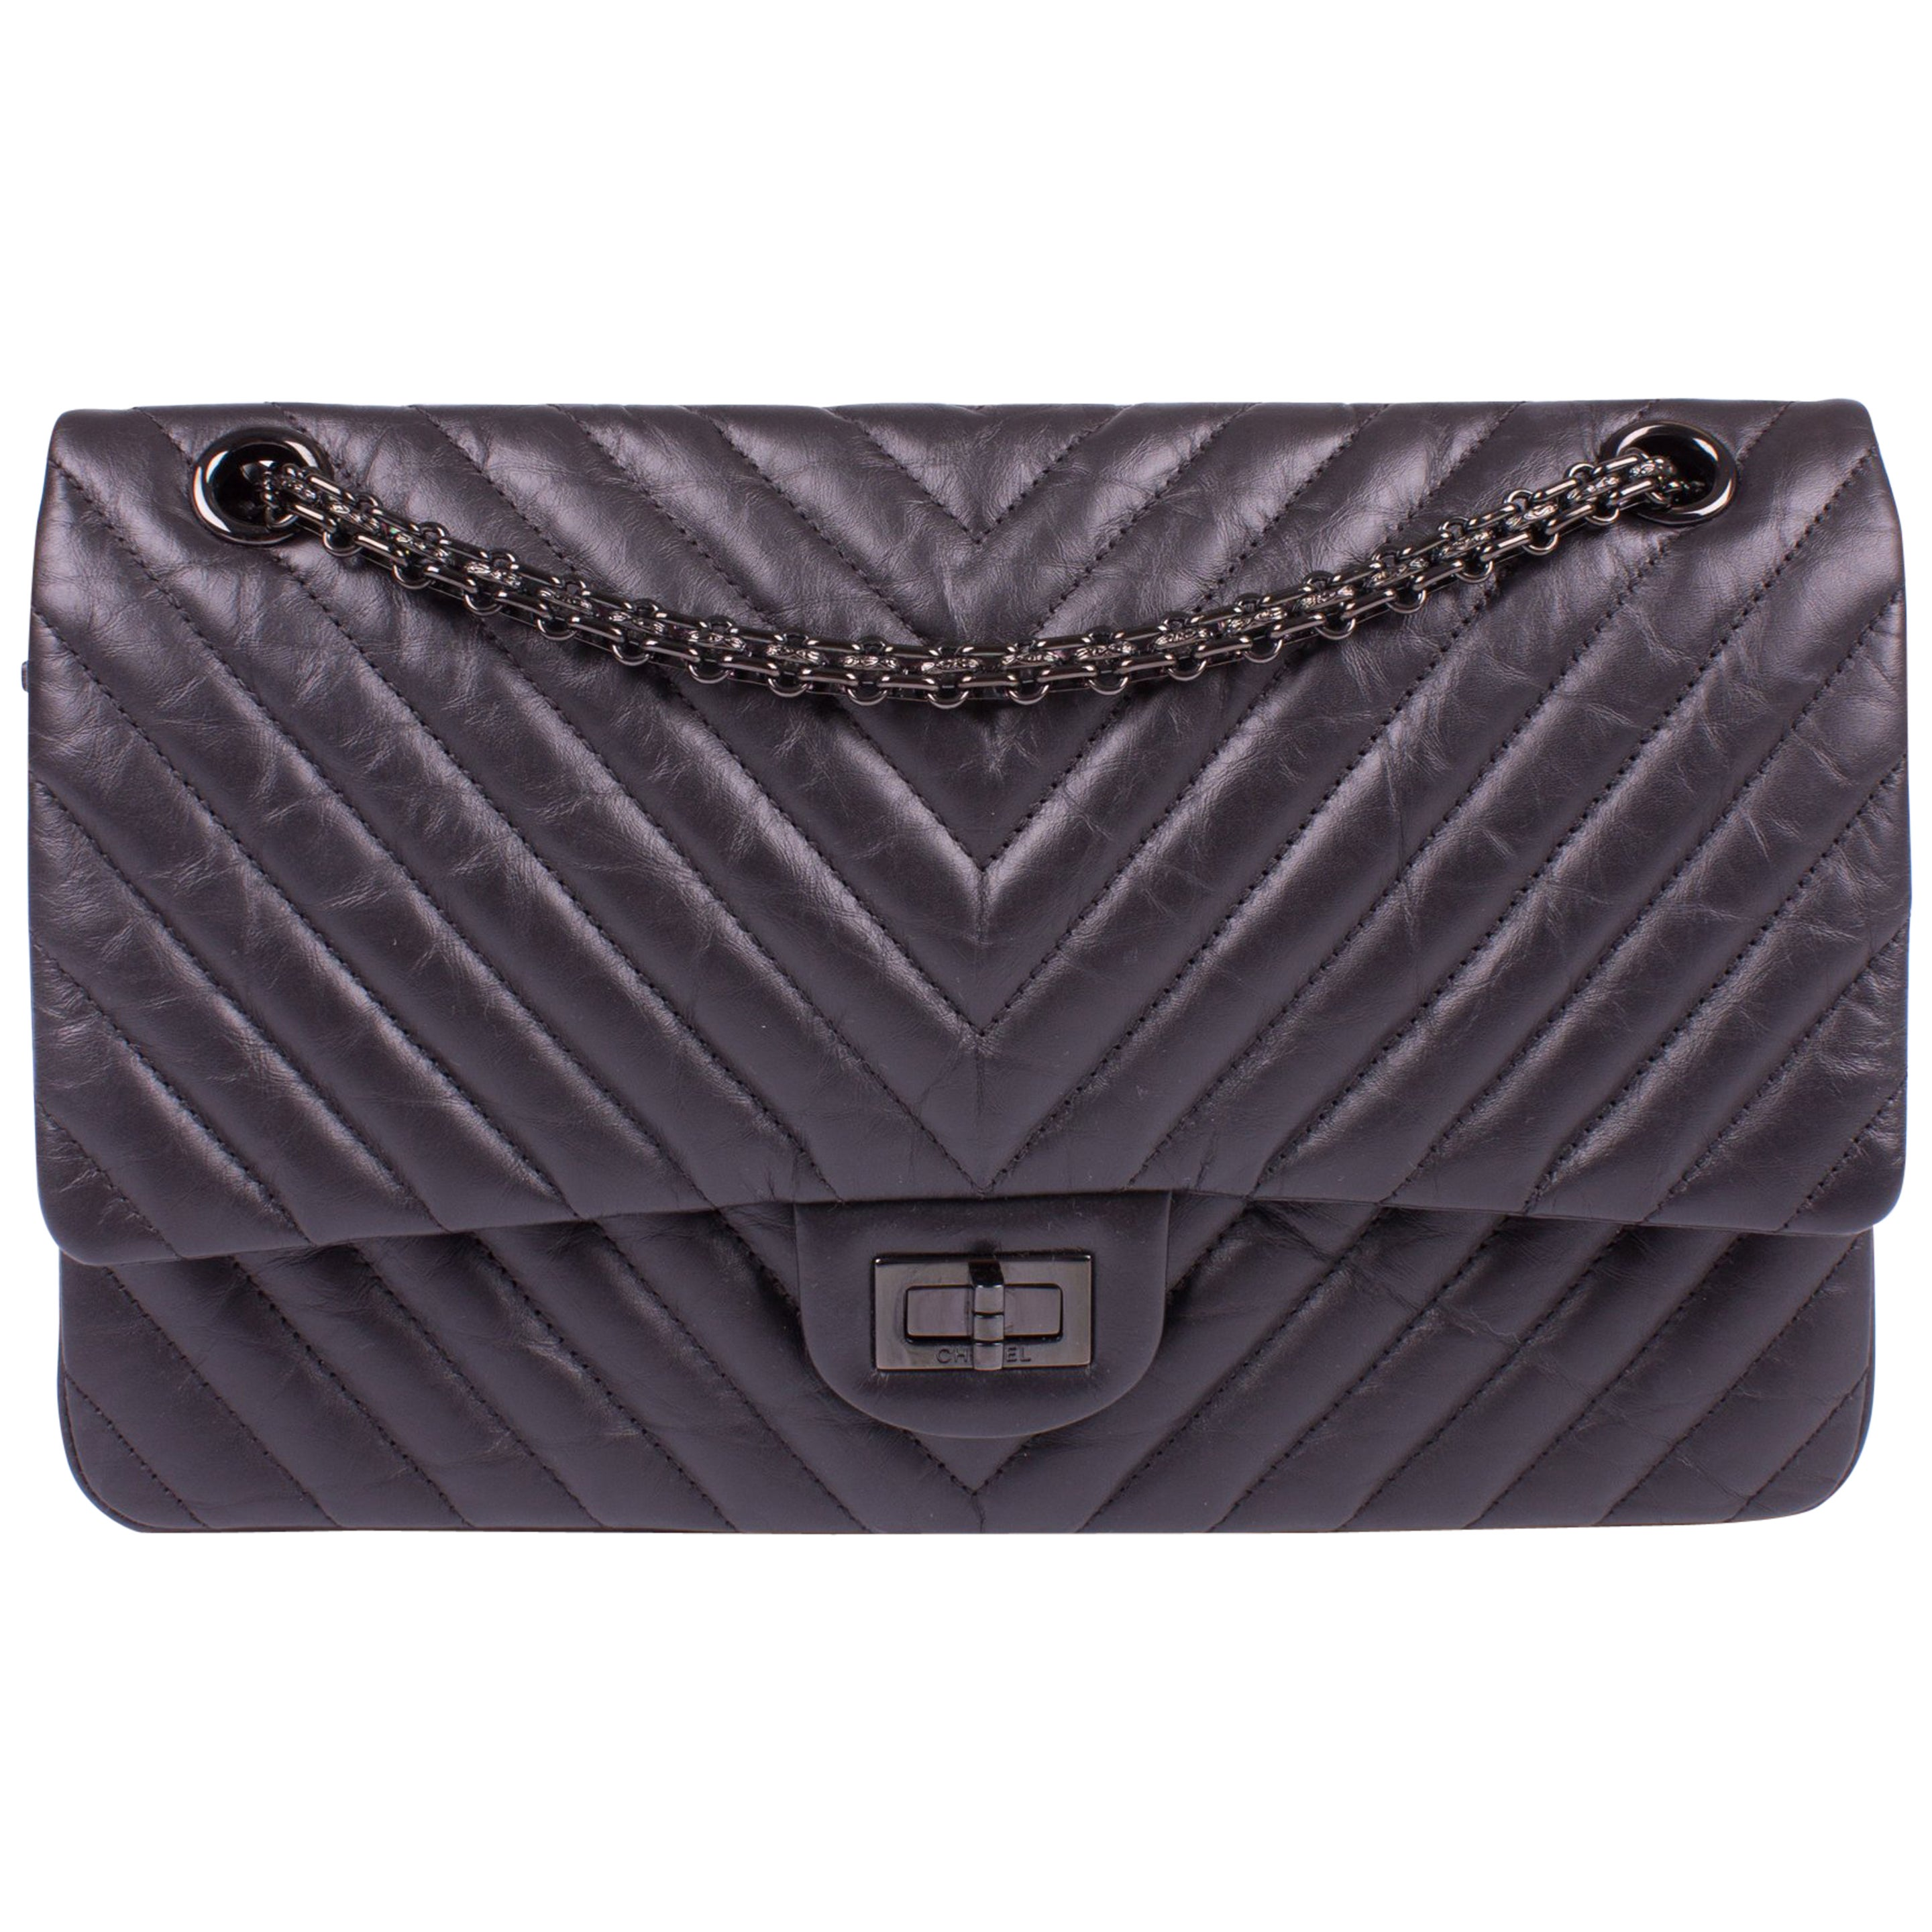 efea34afb929 Chanel 2.55 Reissue Chevron 224 Flap Bag - So Black at 1stdibs